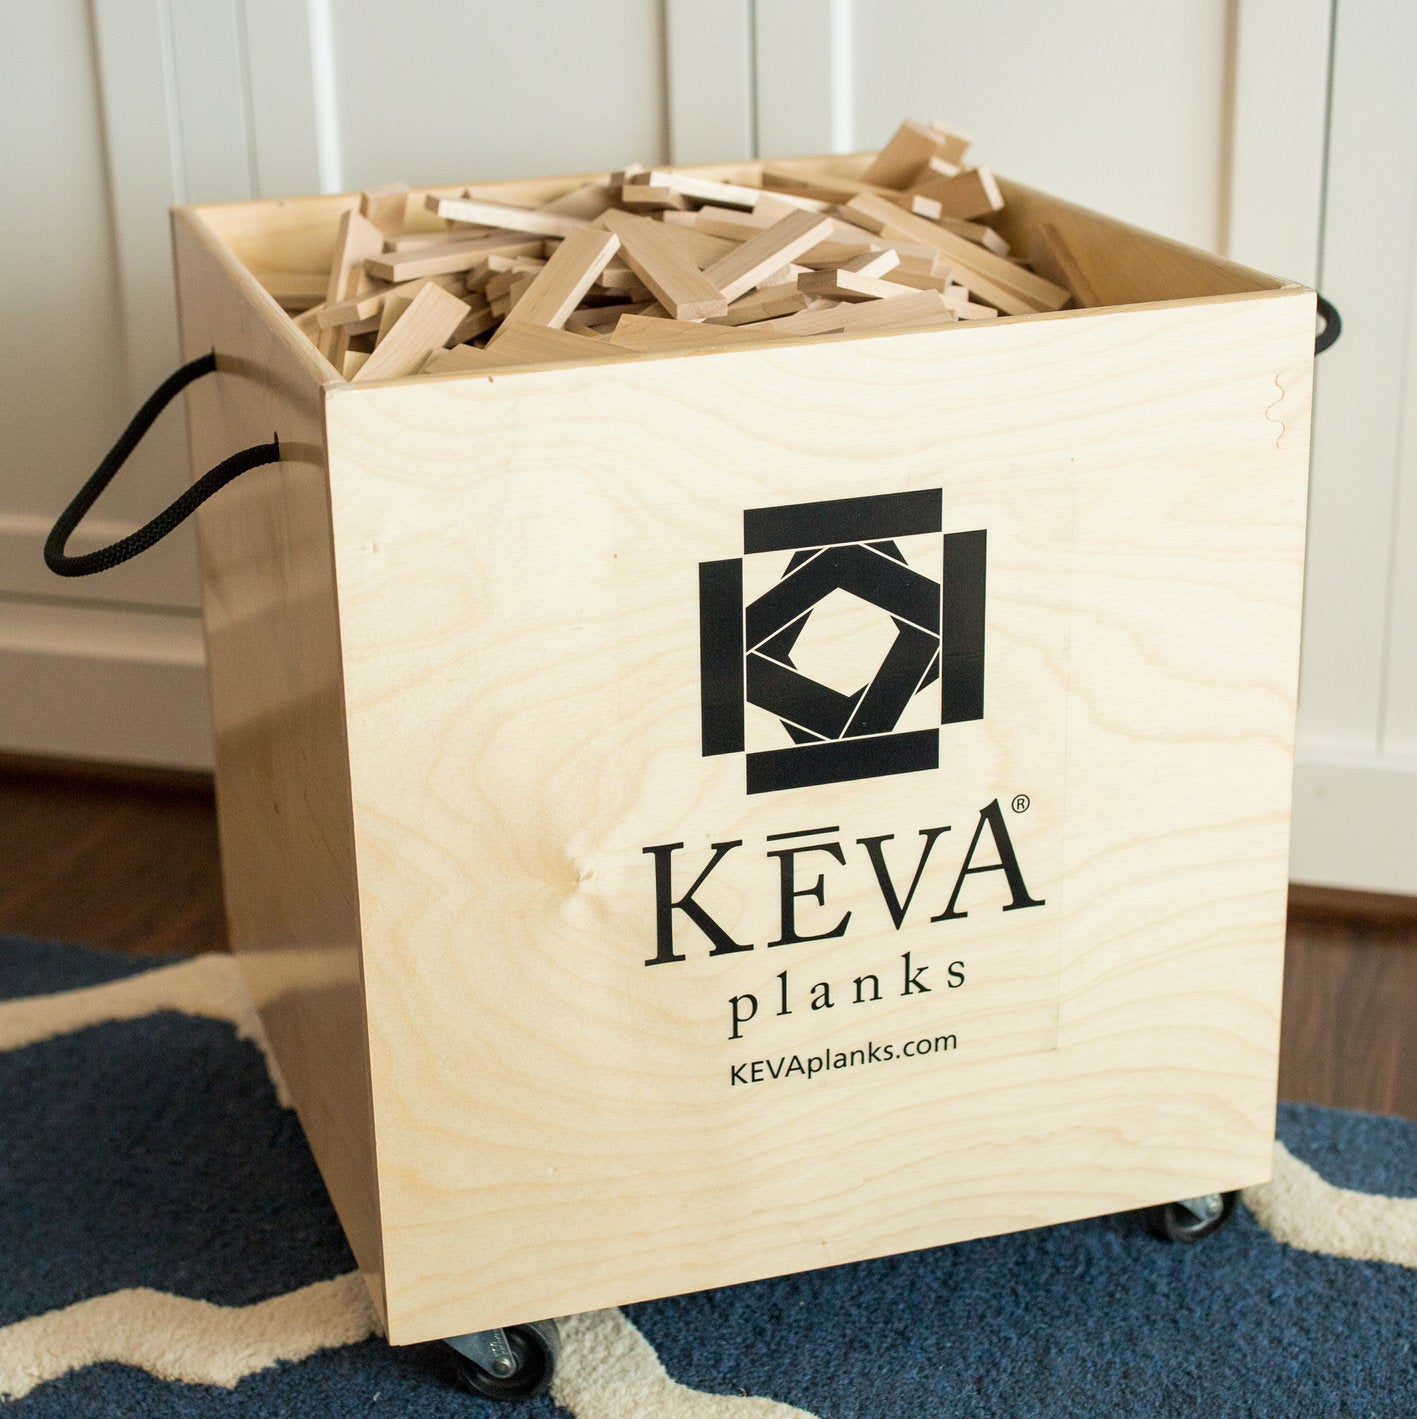 KEVA Maple 1,000 with Birch DuraFlex Bin - kevaplankscom